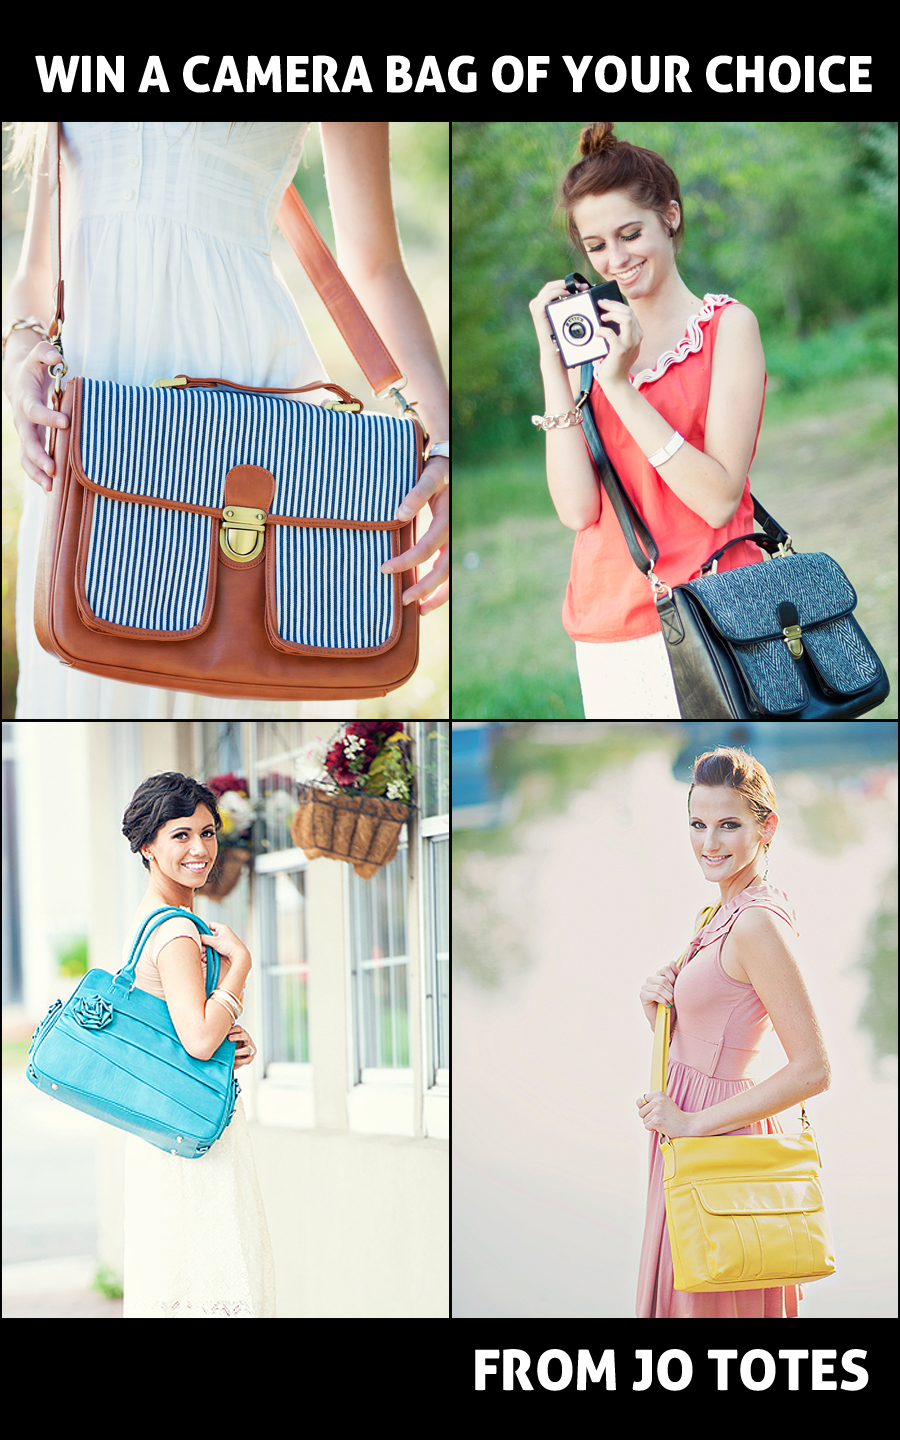 jo-totes-camera-bag Win a NEW Camera Bag {You Pick the Style and Color} Contests